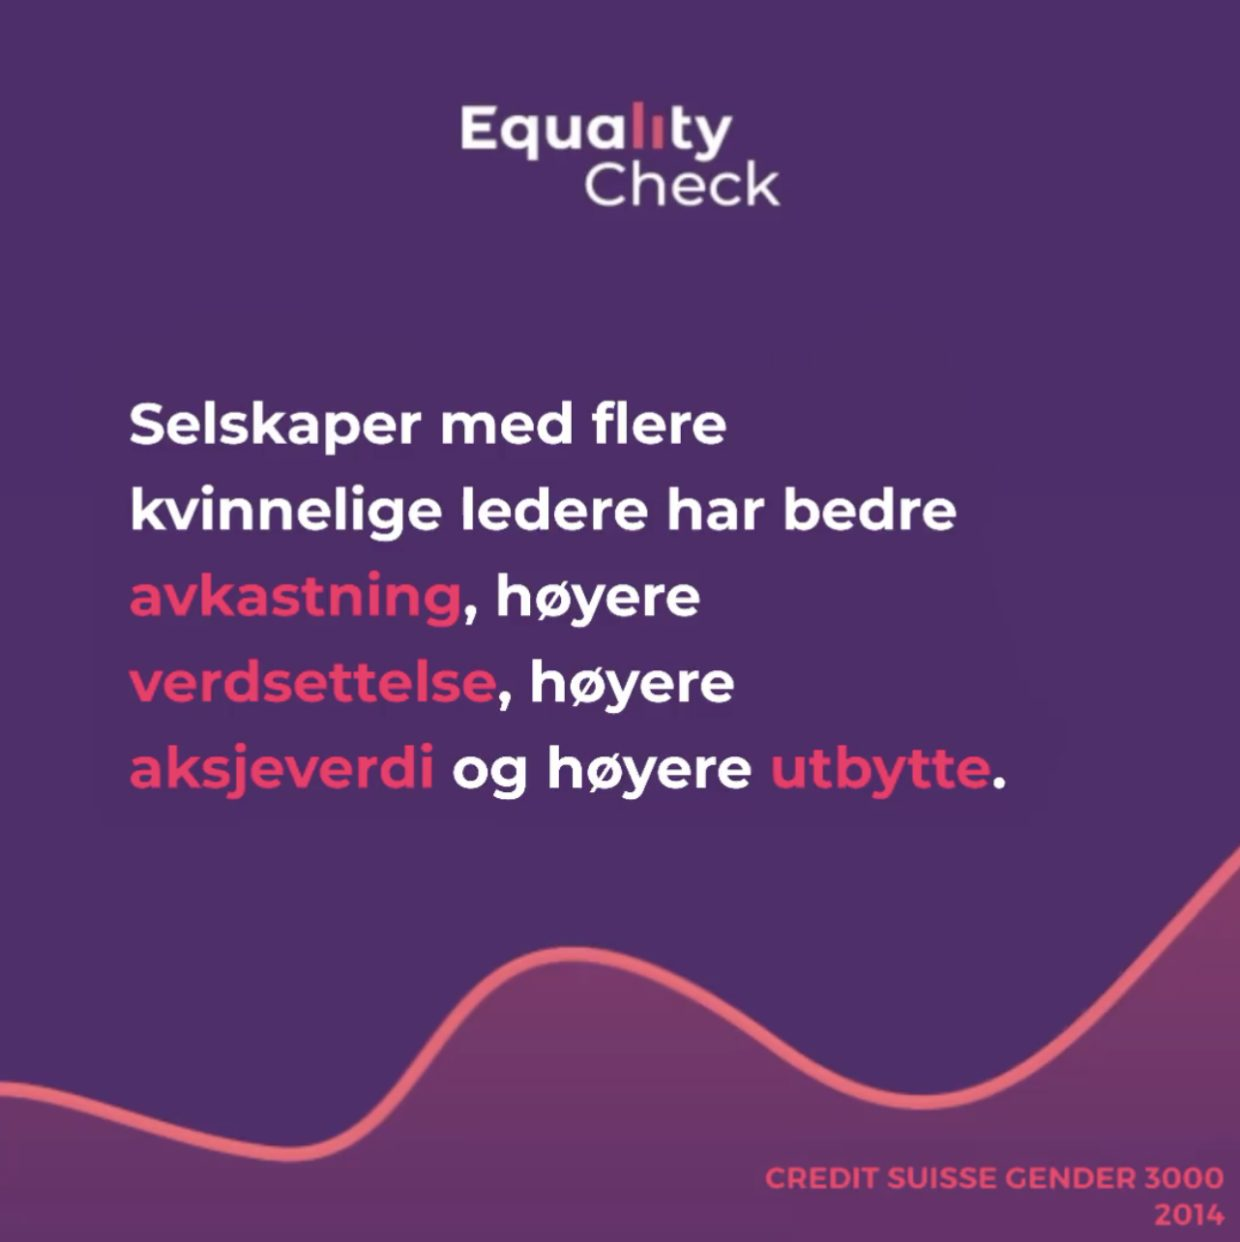 A screenshot of Equality Check's statement